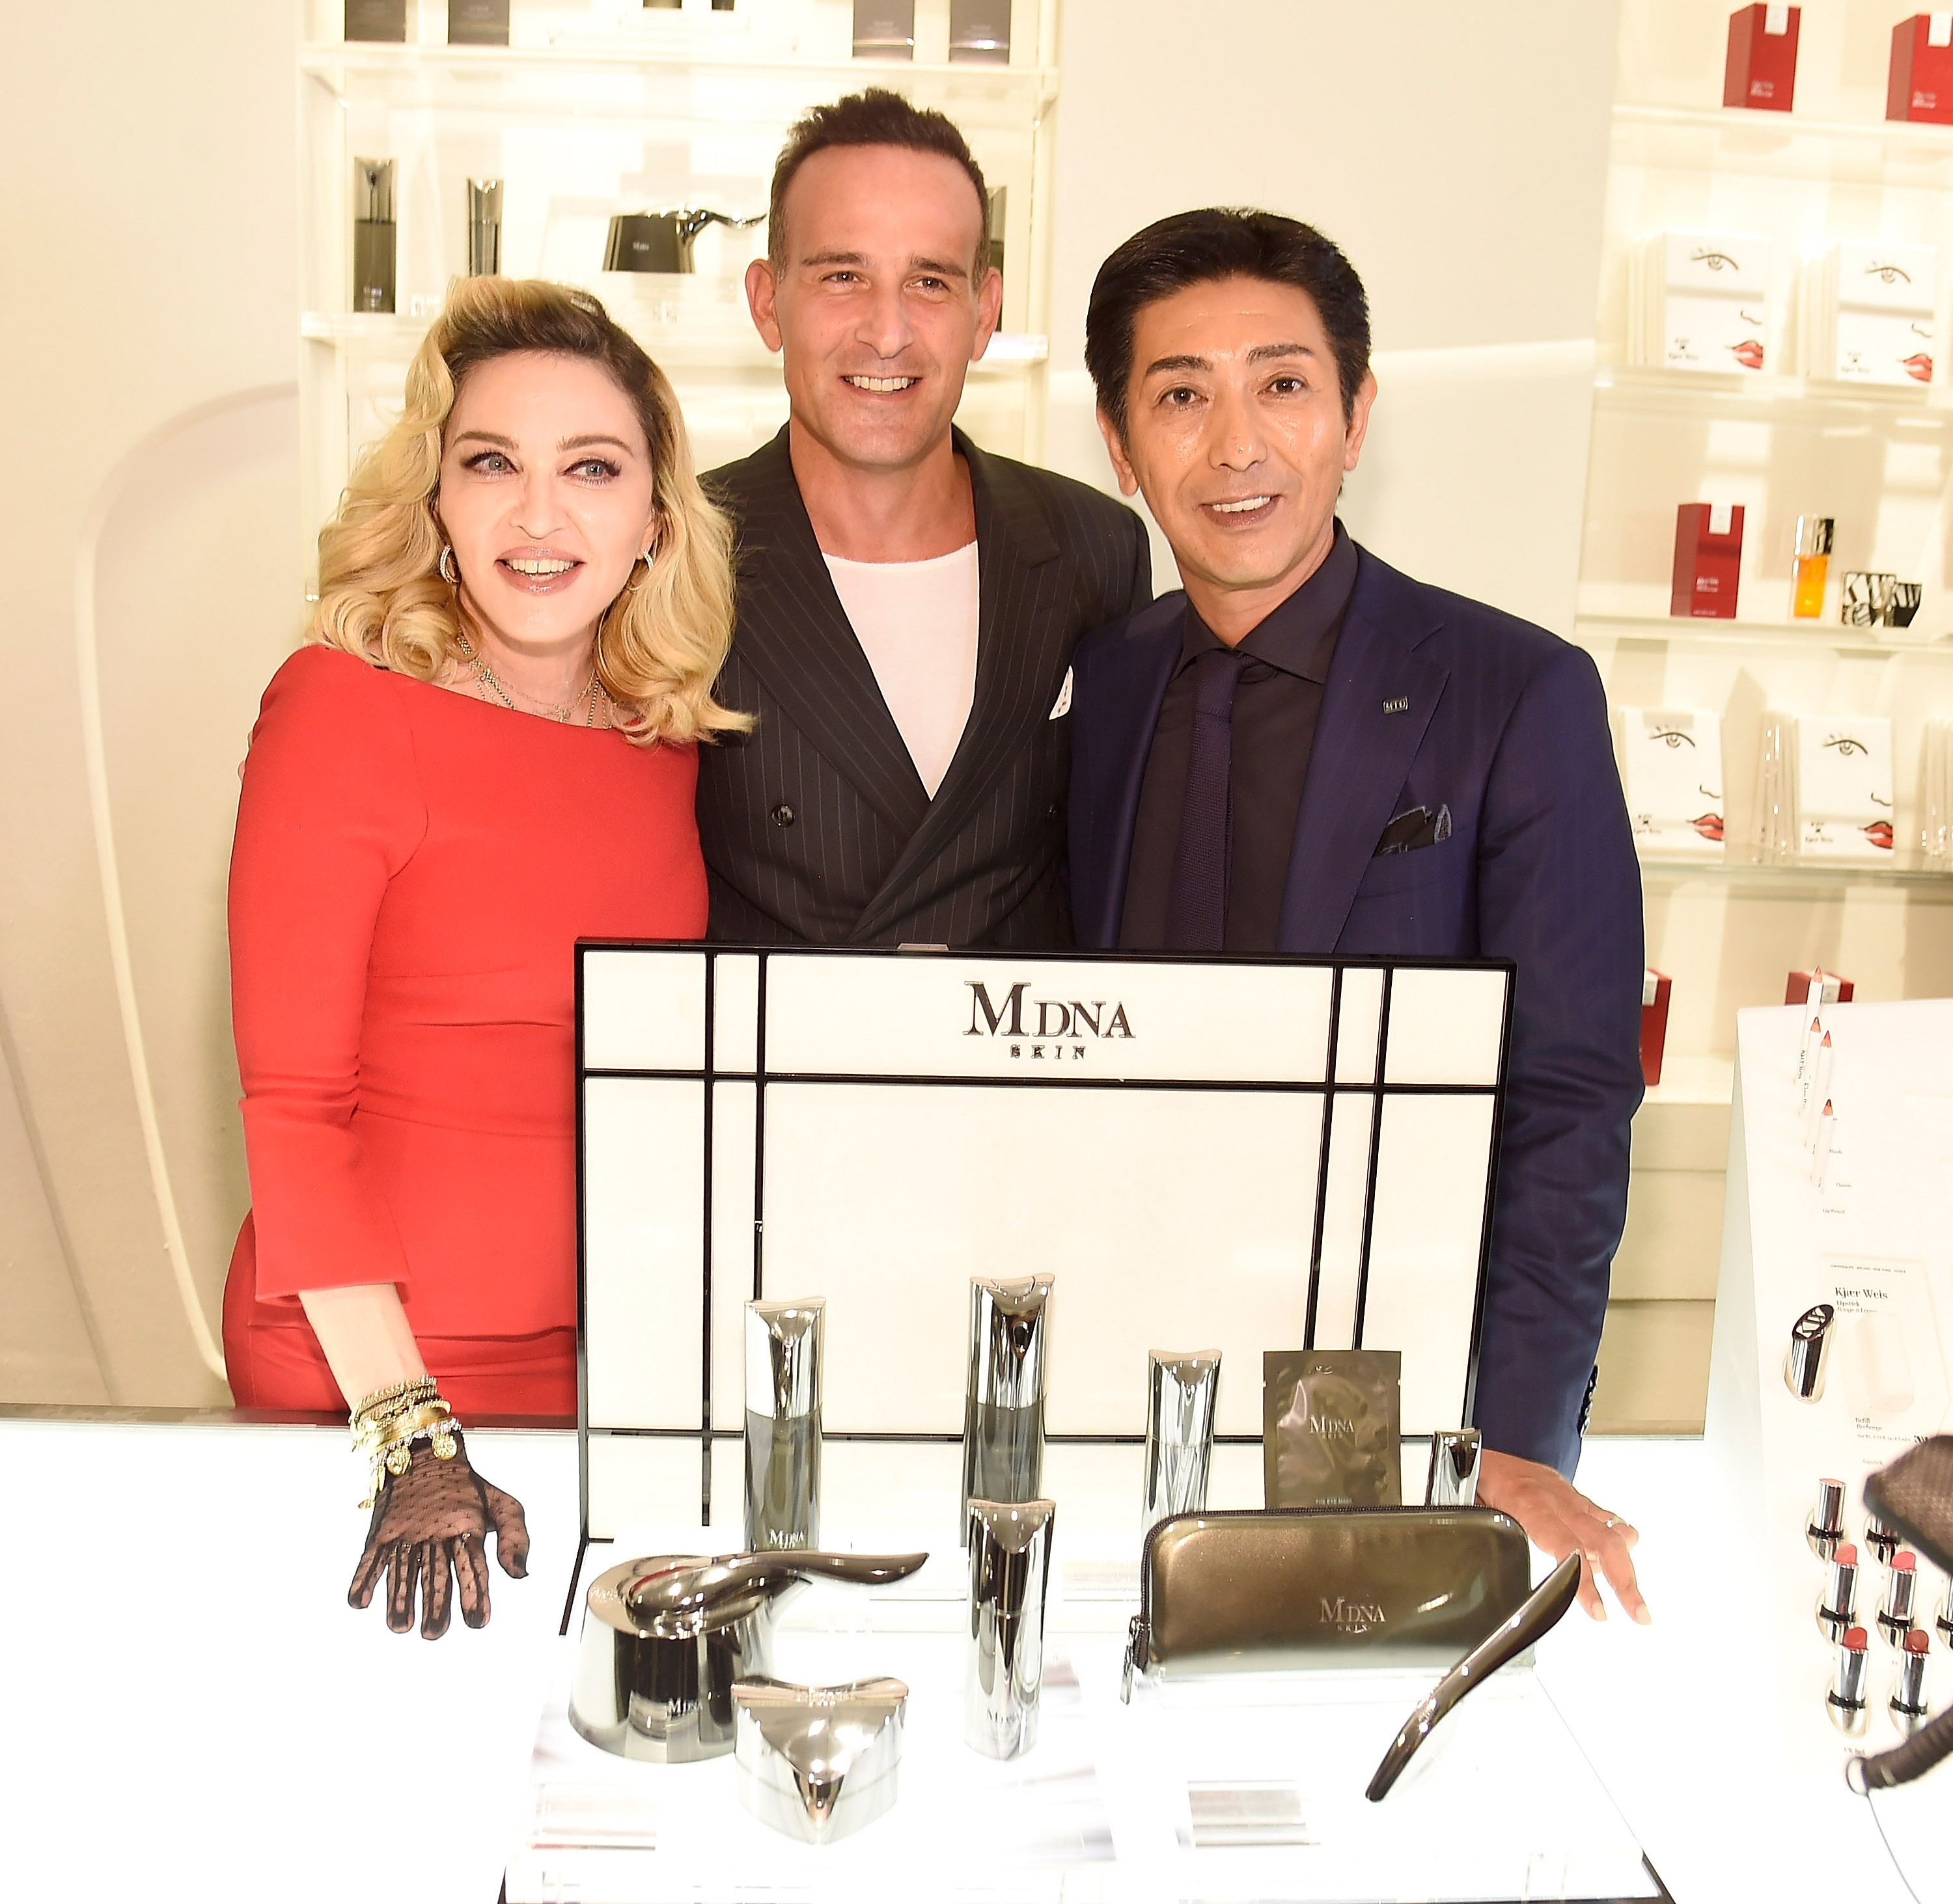 NEW YORK, NY - SEPTEMBER 26:  Dr Paul Jarrod Frank, Madonna and Tsuyoshi Matsushita, president of MTG Co., Ltd  launch MDNA SKIN collection at Barneys New York on September 26, 2017 in New York City.  (Photo by Kevin Mazur/Getty Images for MDNA SKIN)